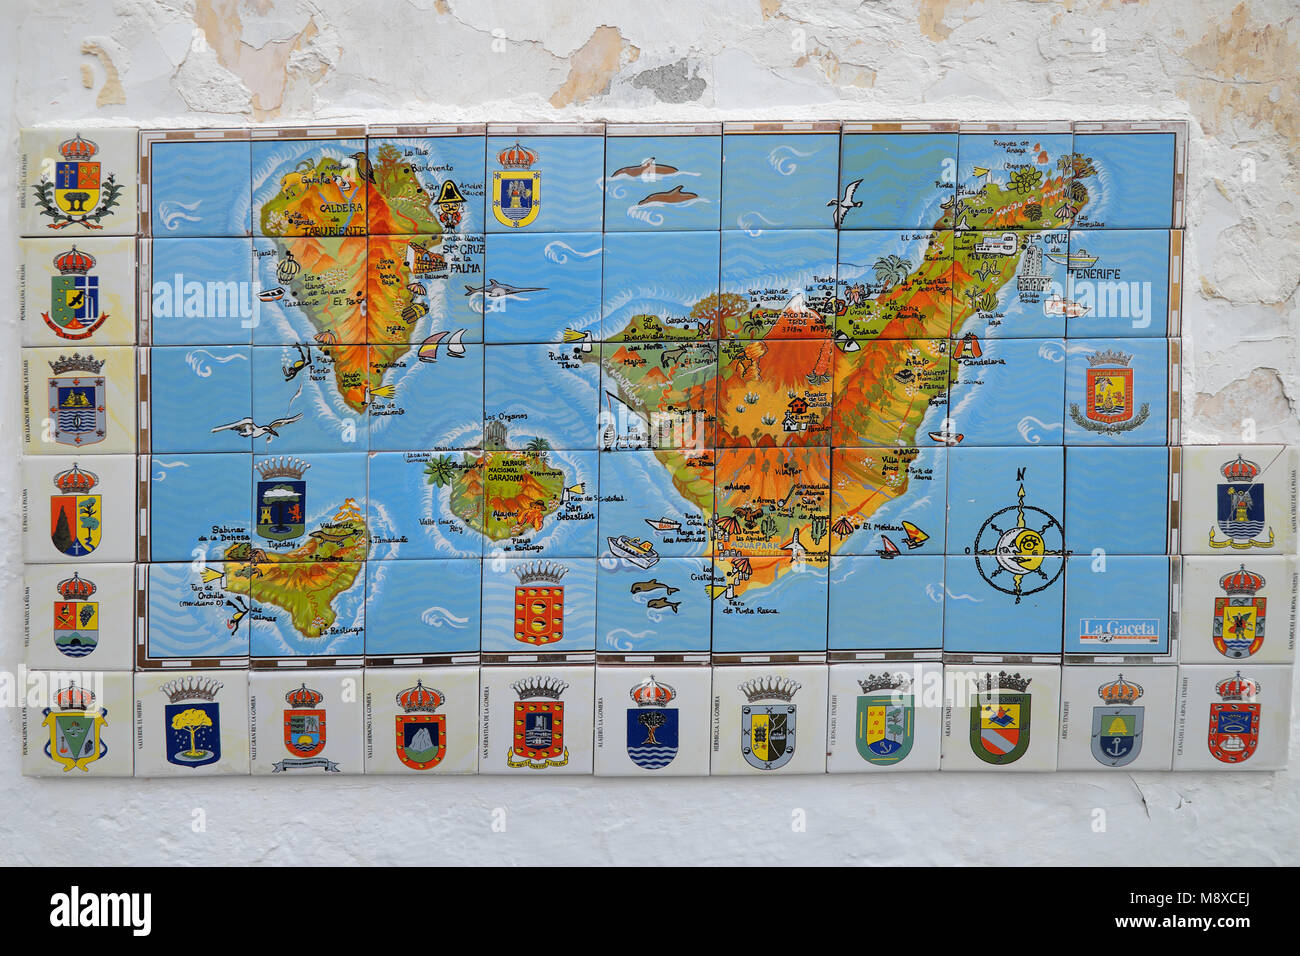 Map Of Spain Tenerife.A Map Tenerife Made From Tiles In The Canary Islands Of Spain Stock